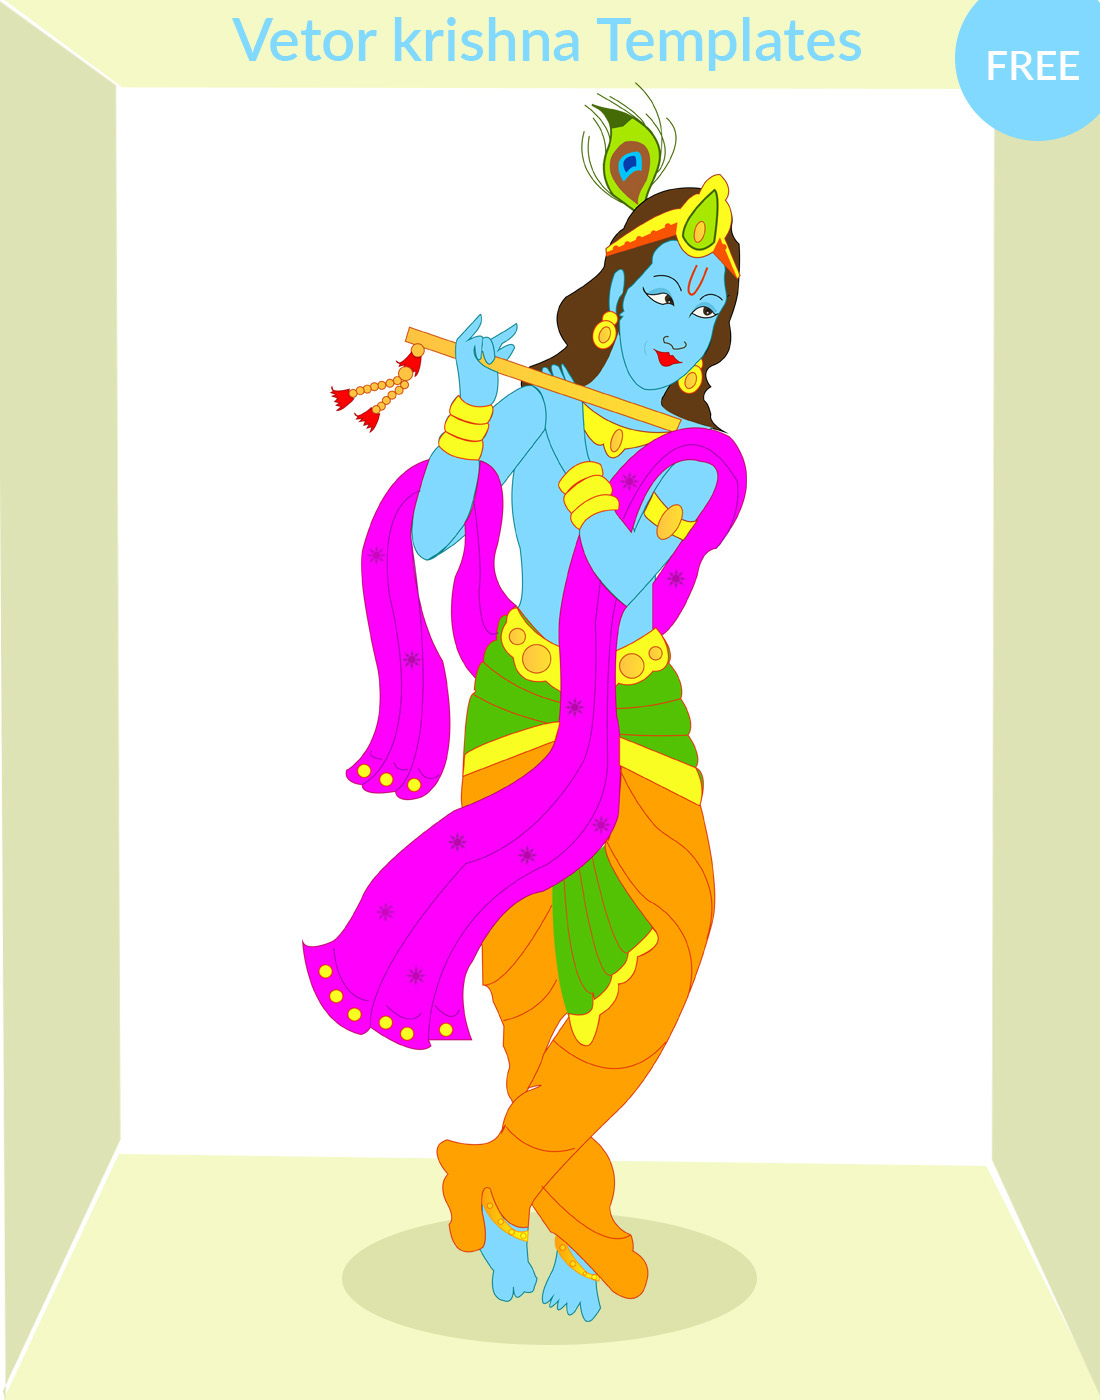 Krishna vector download free download on Behance